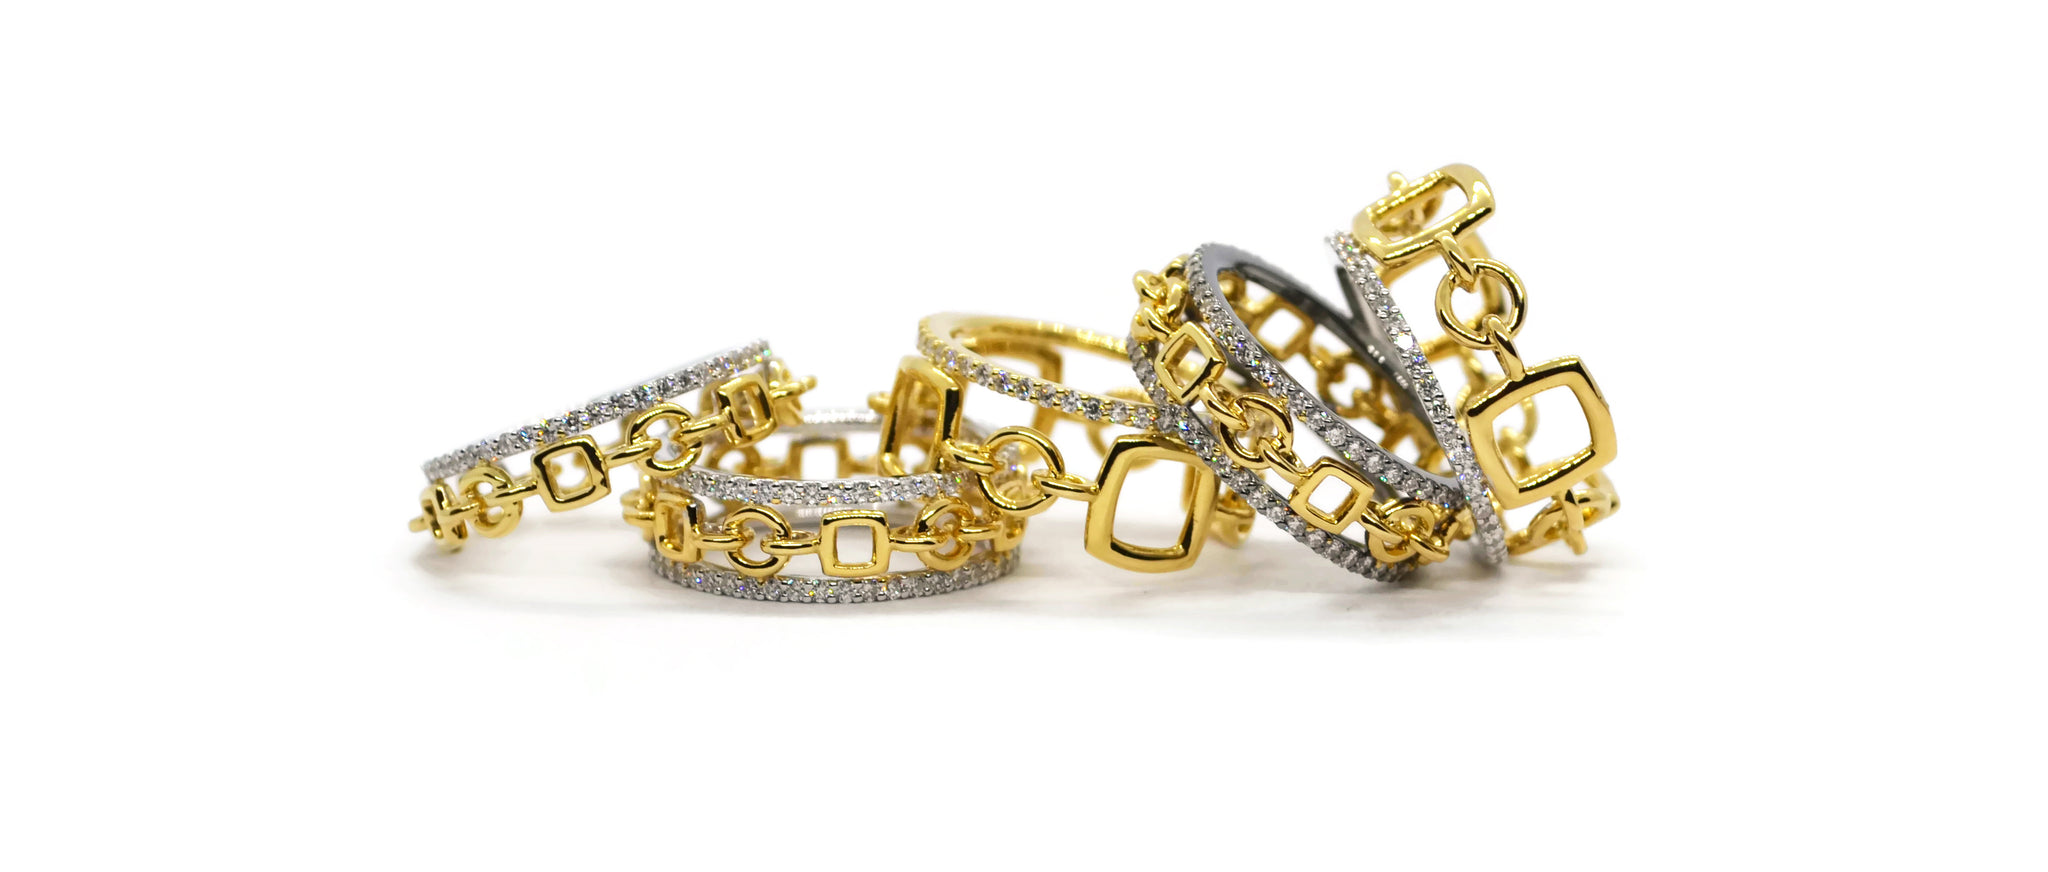 A-FURST-GAIA-ORO-COLLECTION-STACKABLE-BAND-RINGS